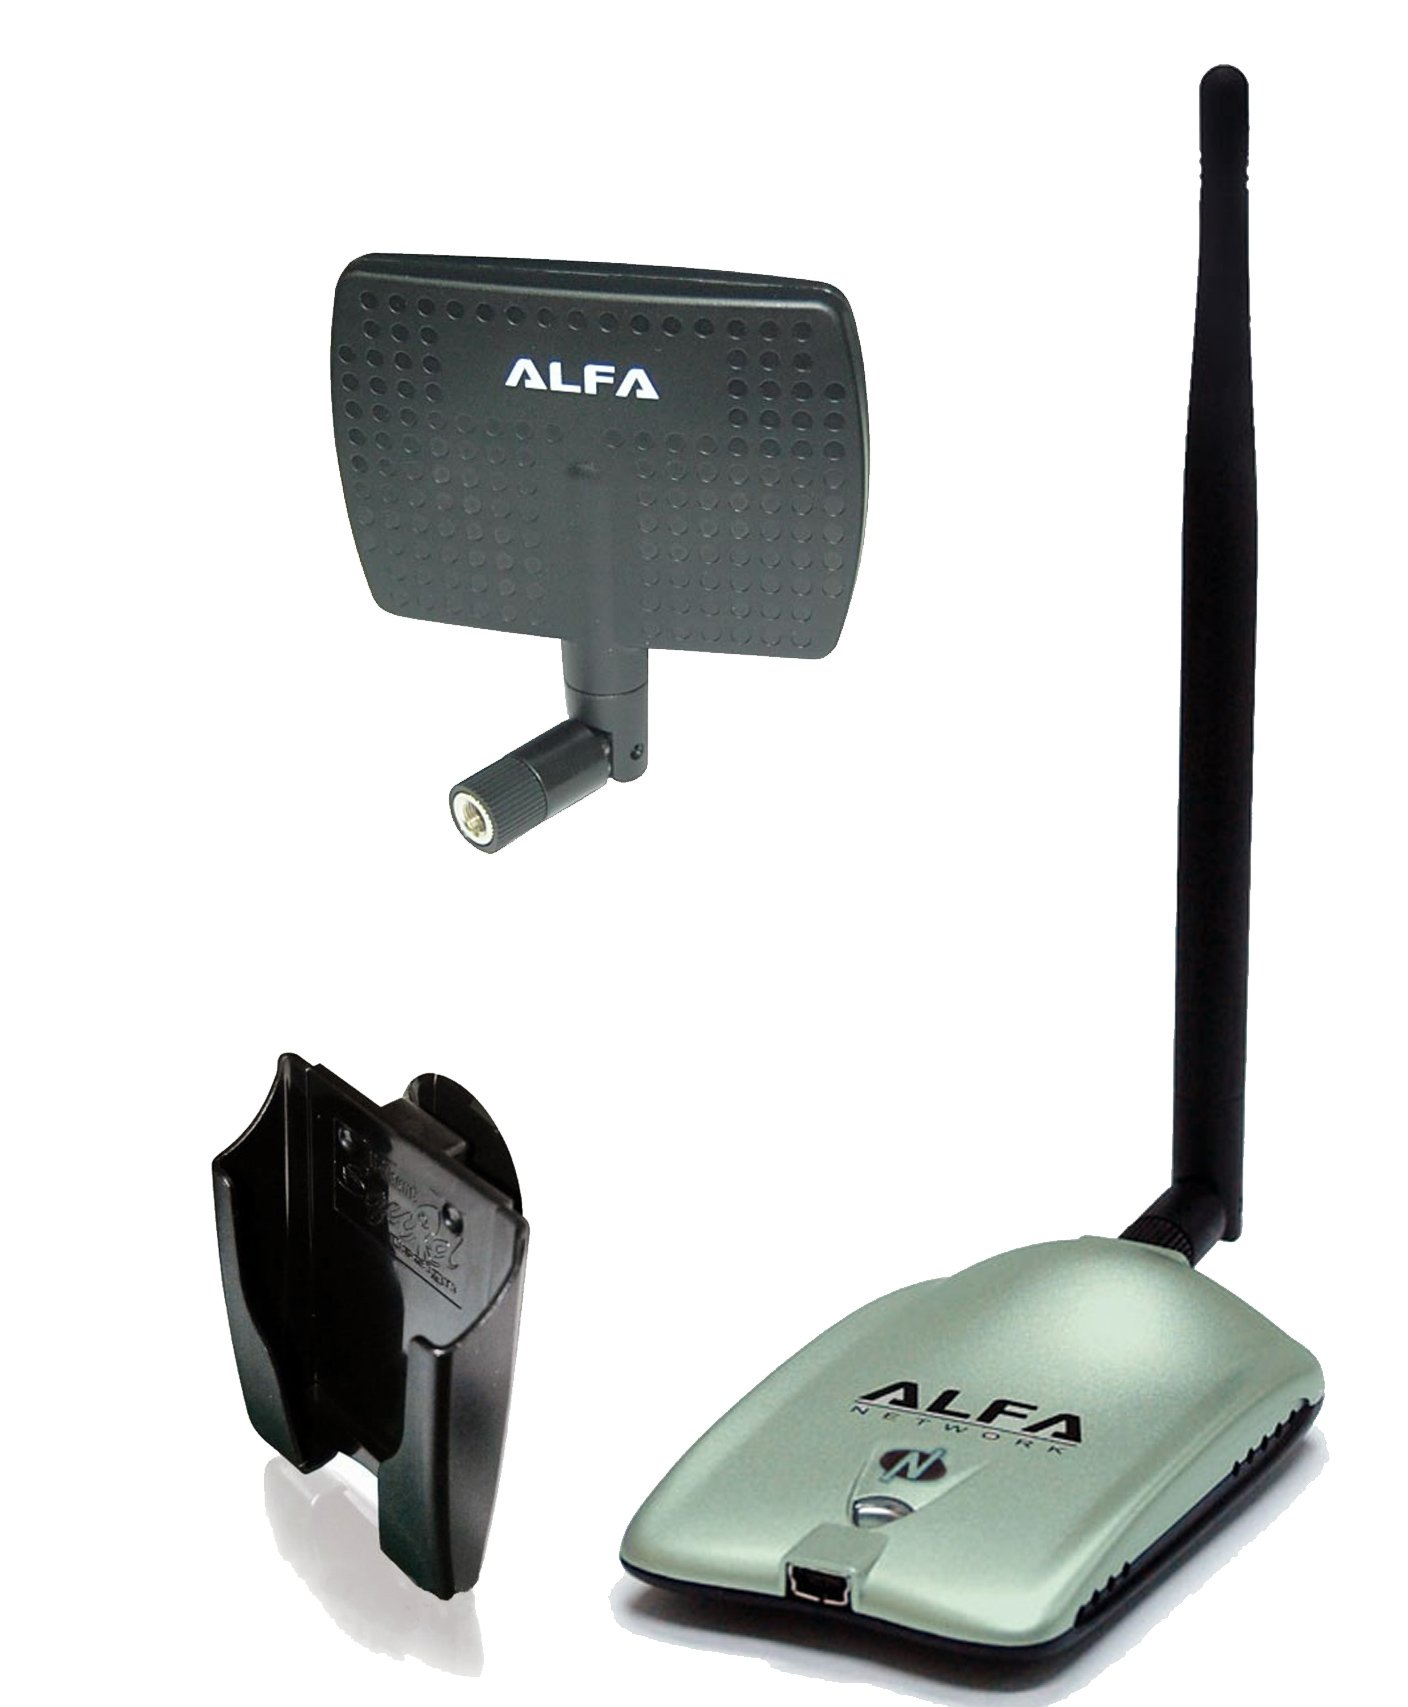 Alfa AWUS036NH 2000mW 2W 802.11g/n High Gain USB Wireless G/N Long-Range WiFi Network Adapter with 5dBi Screw-On Swivel Rubber Antenna and 7dBi Panel Antenna and Suction cup/Clip Window Mount